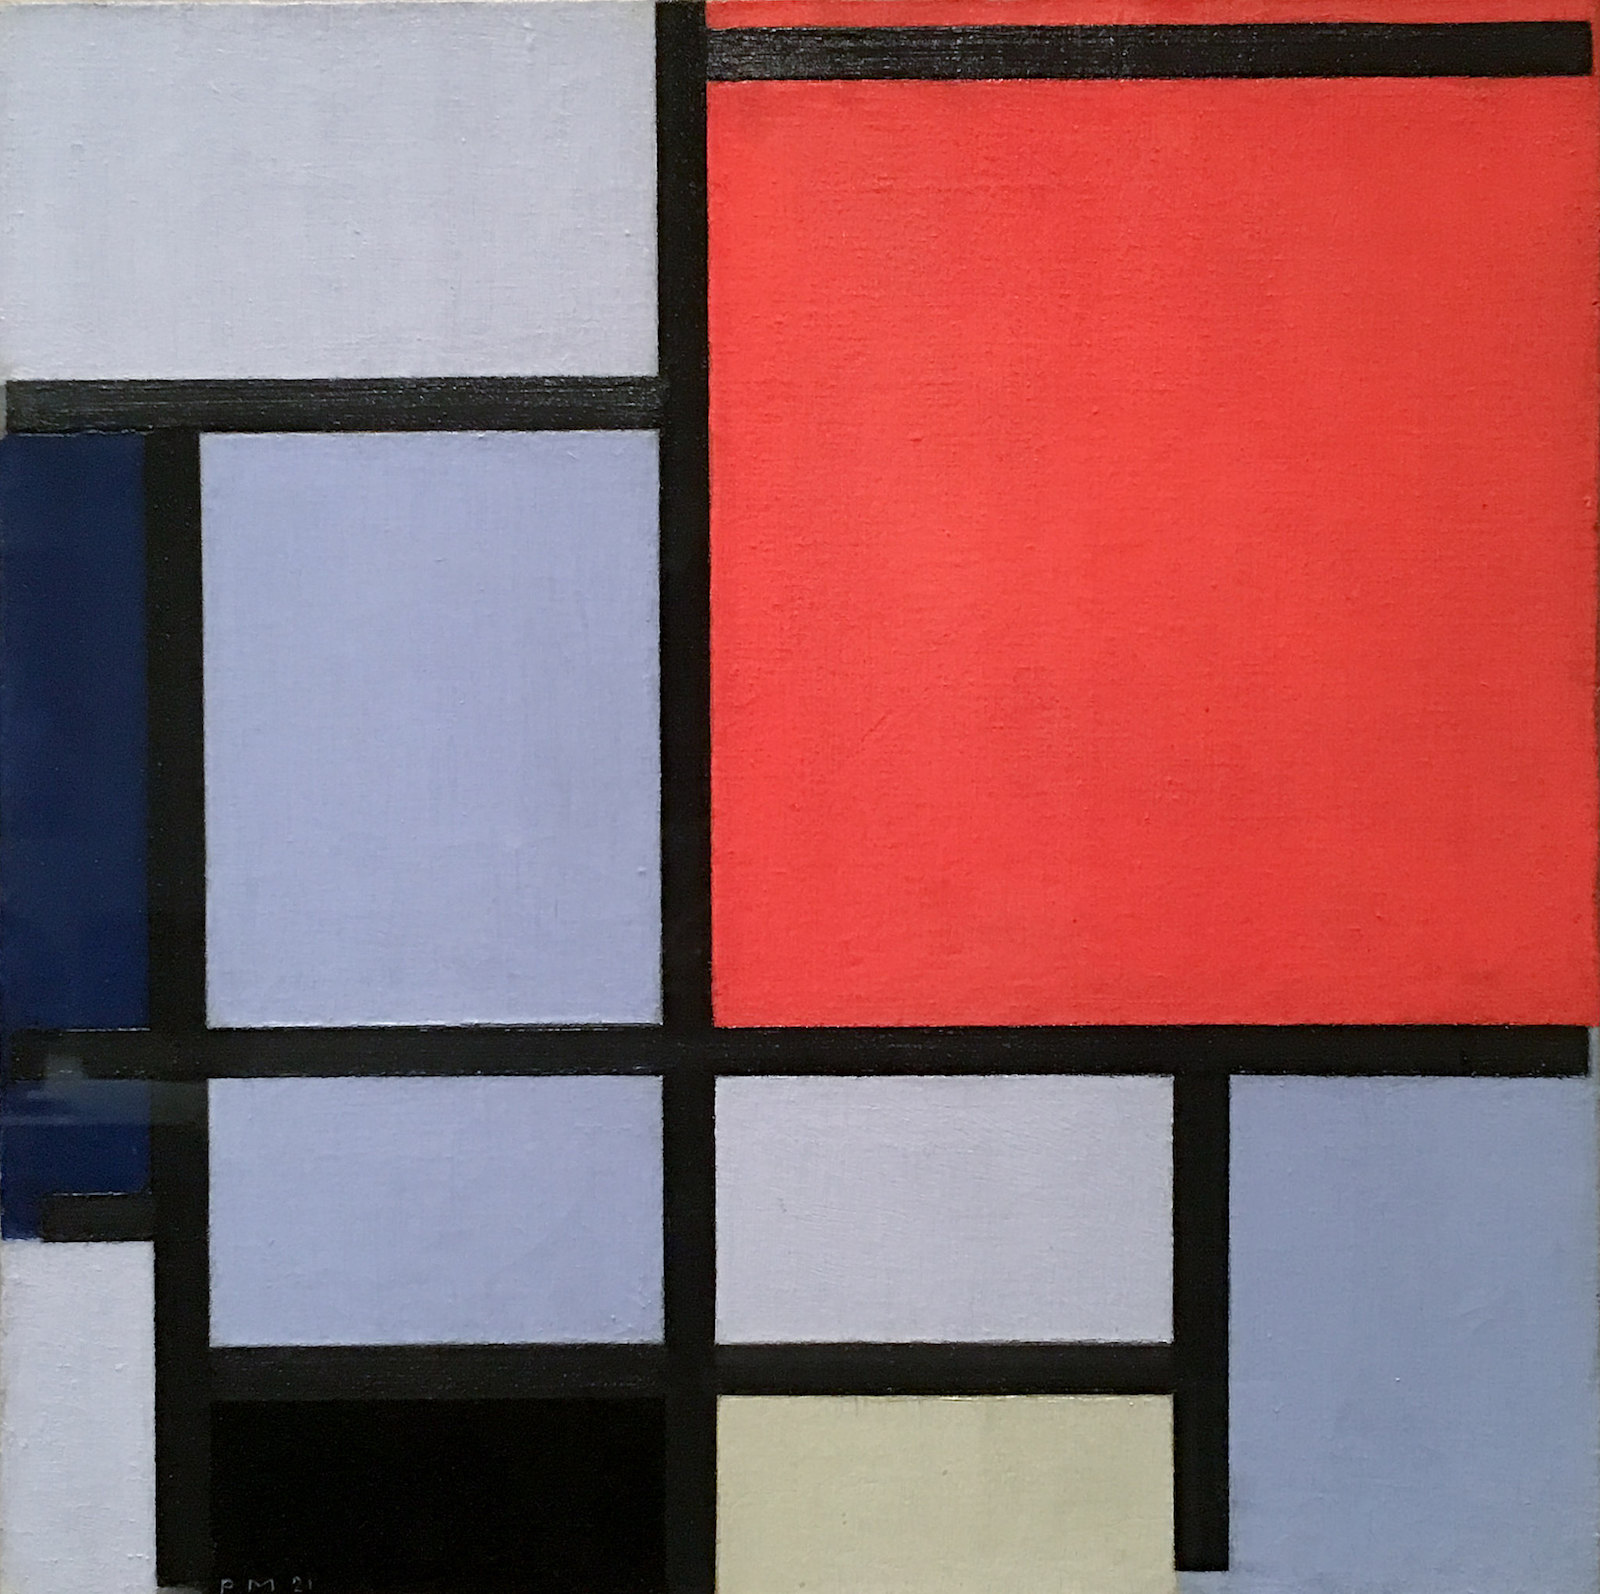 Piet Mondrian, Composition, 1921 by Sharon Mollerus